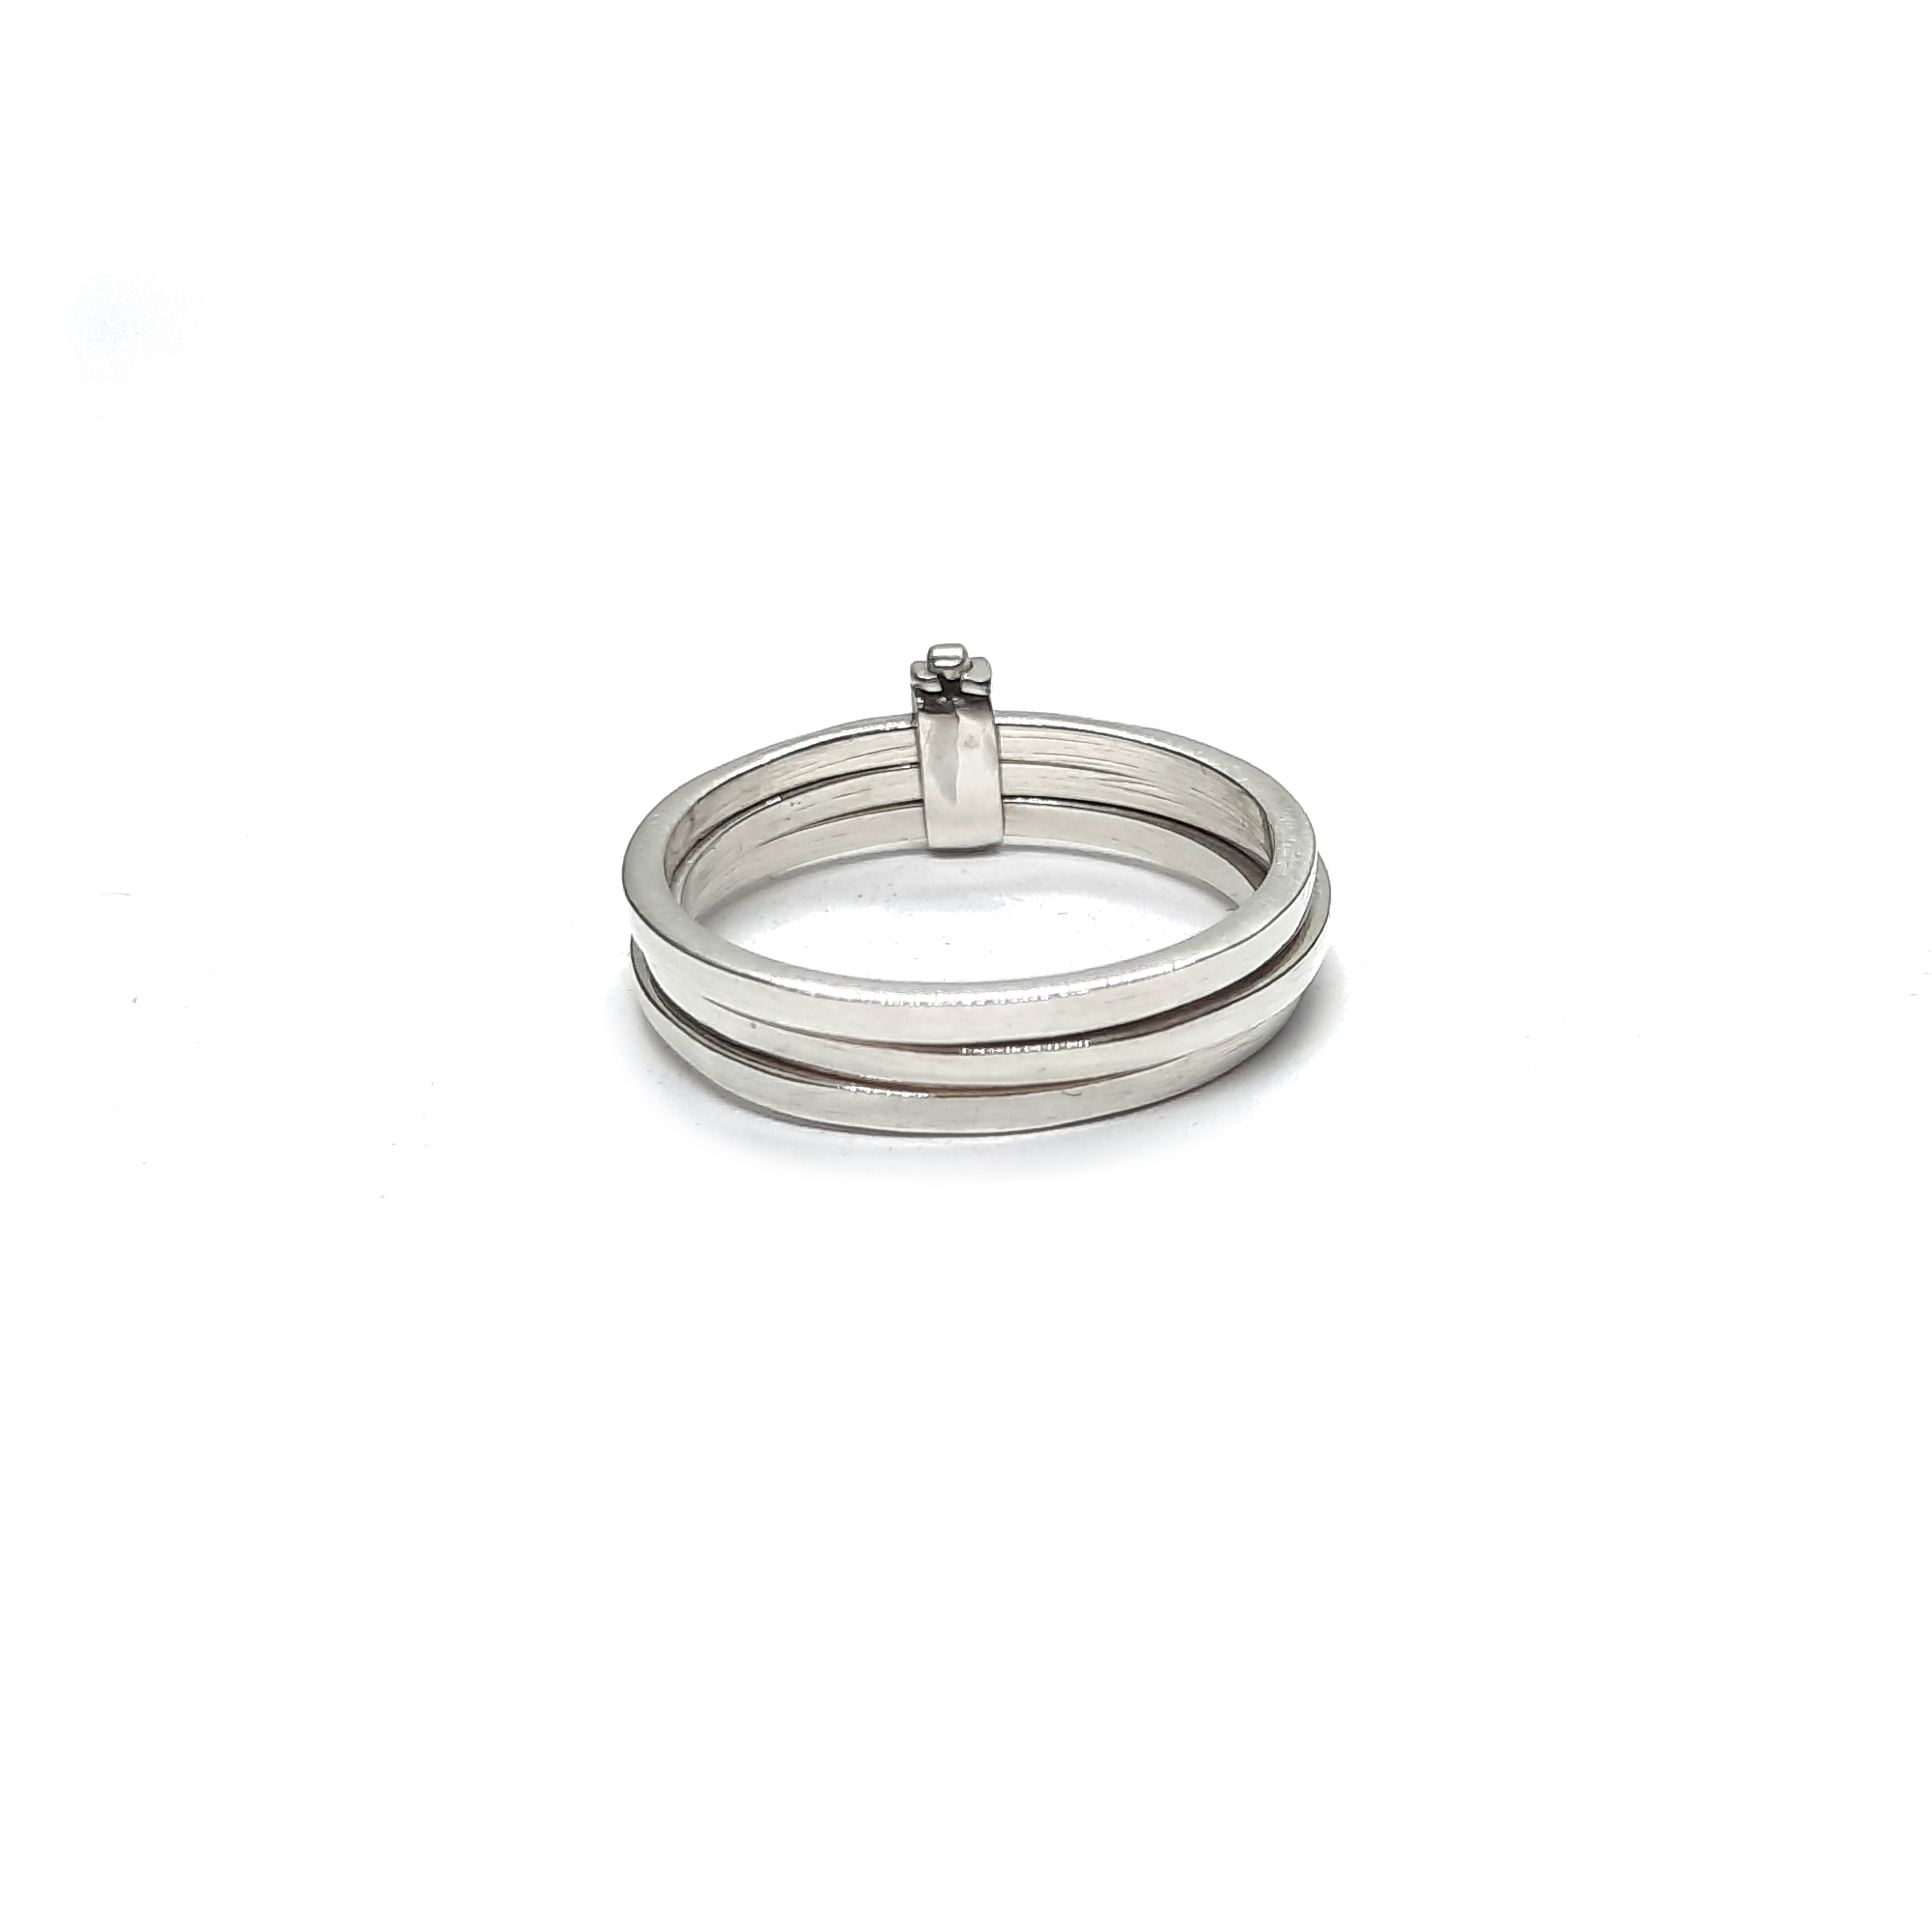 Silver ring - R002210